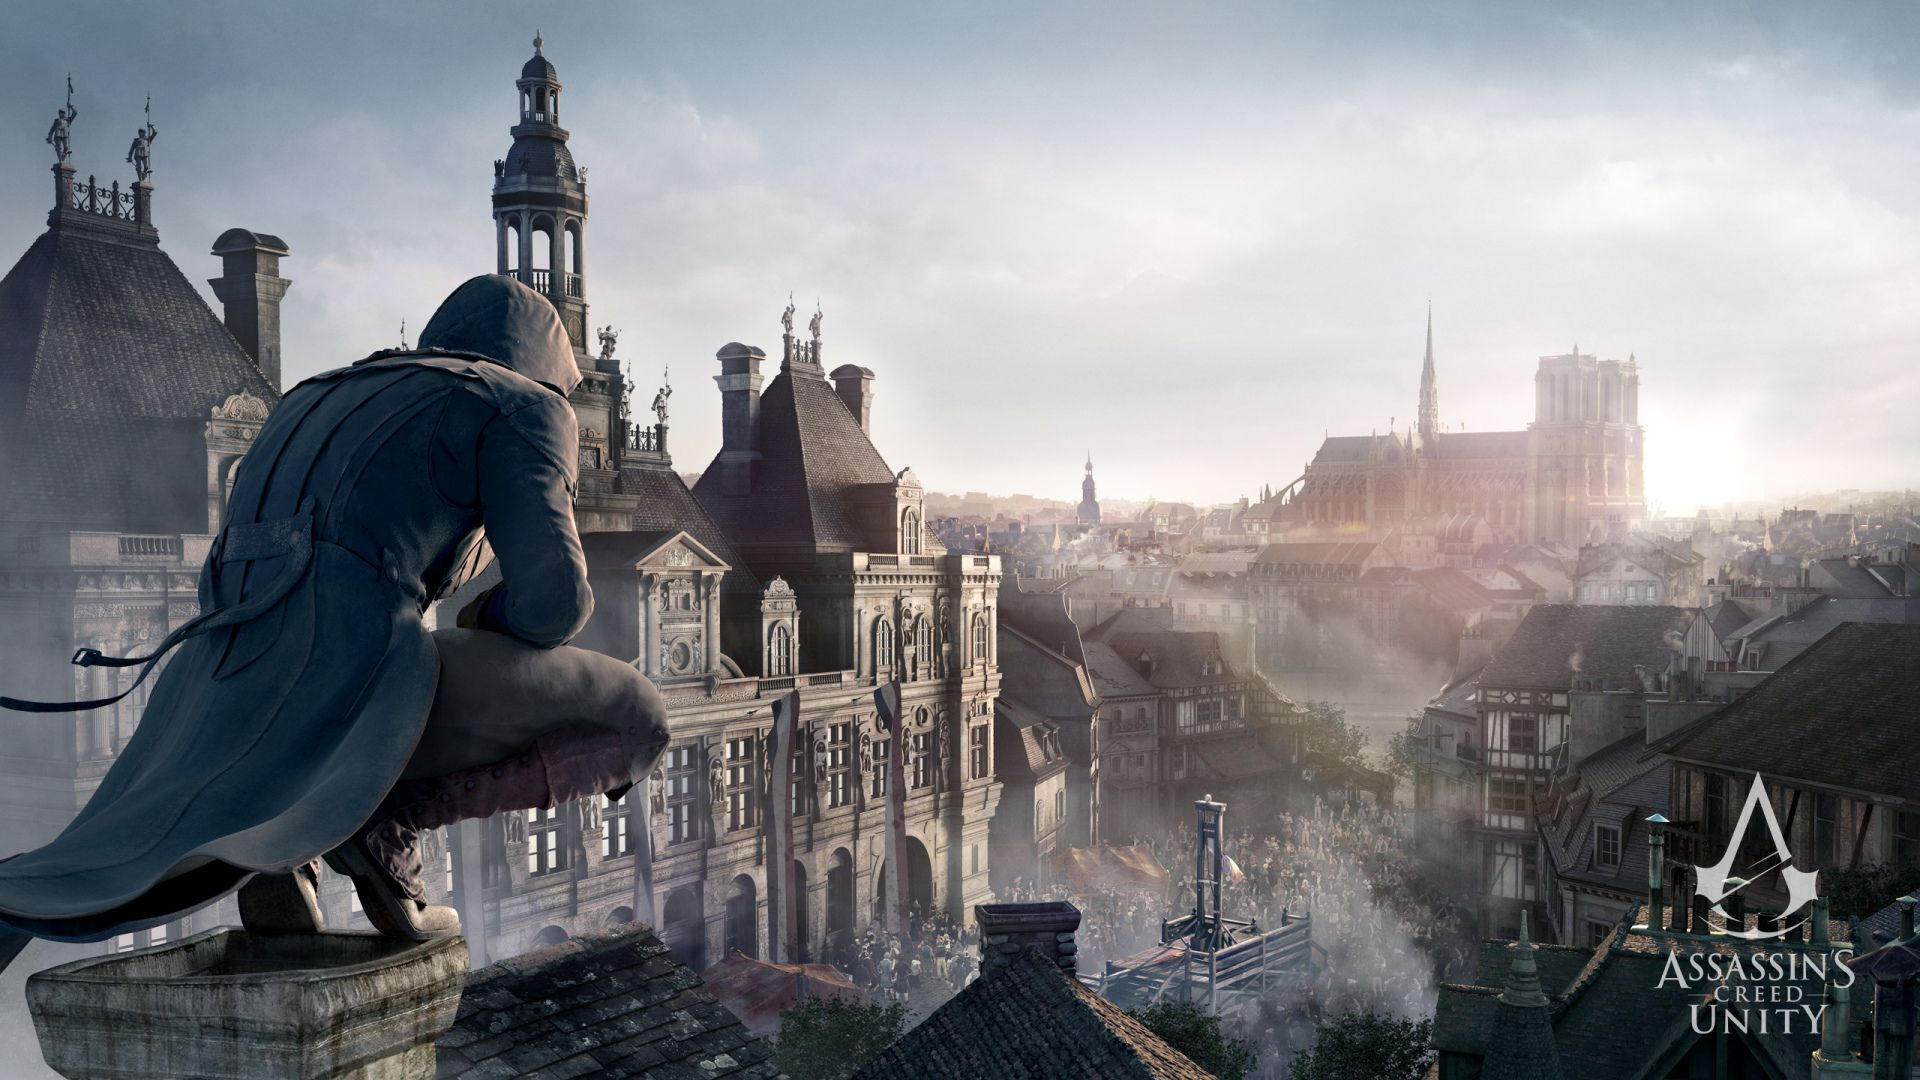 Video Game Assassin S Creed Unity Wallpaper Assassins Creed